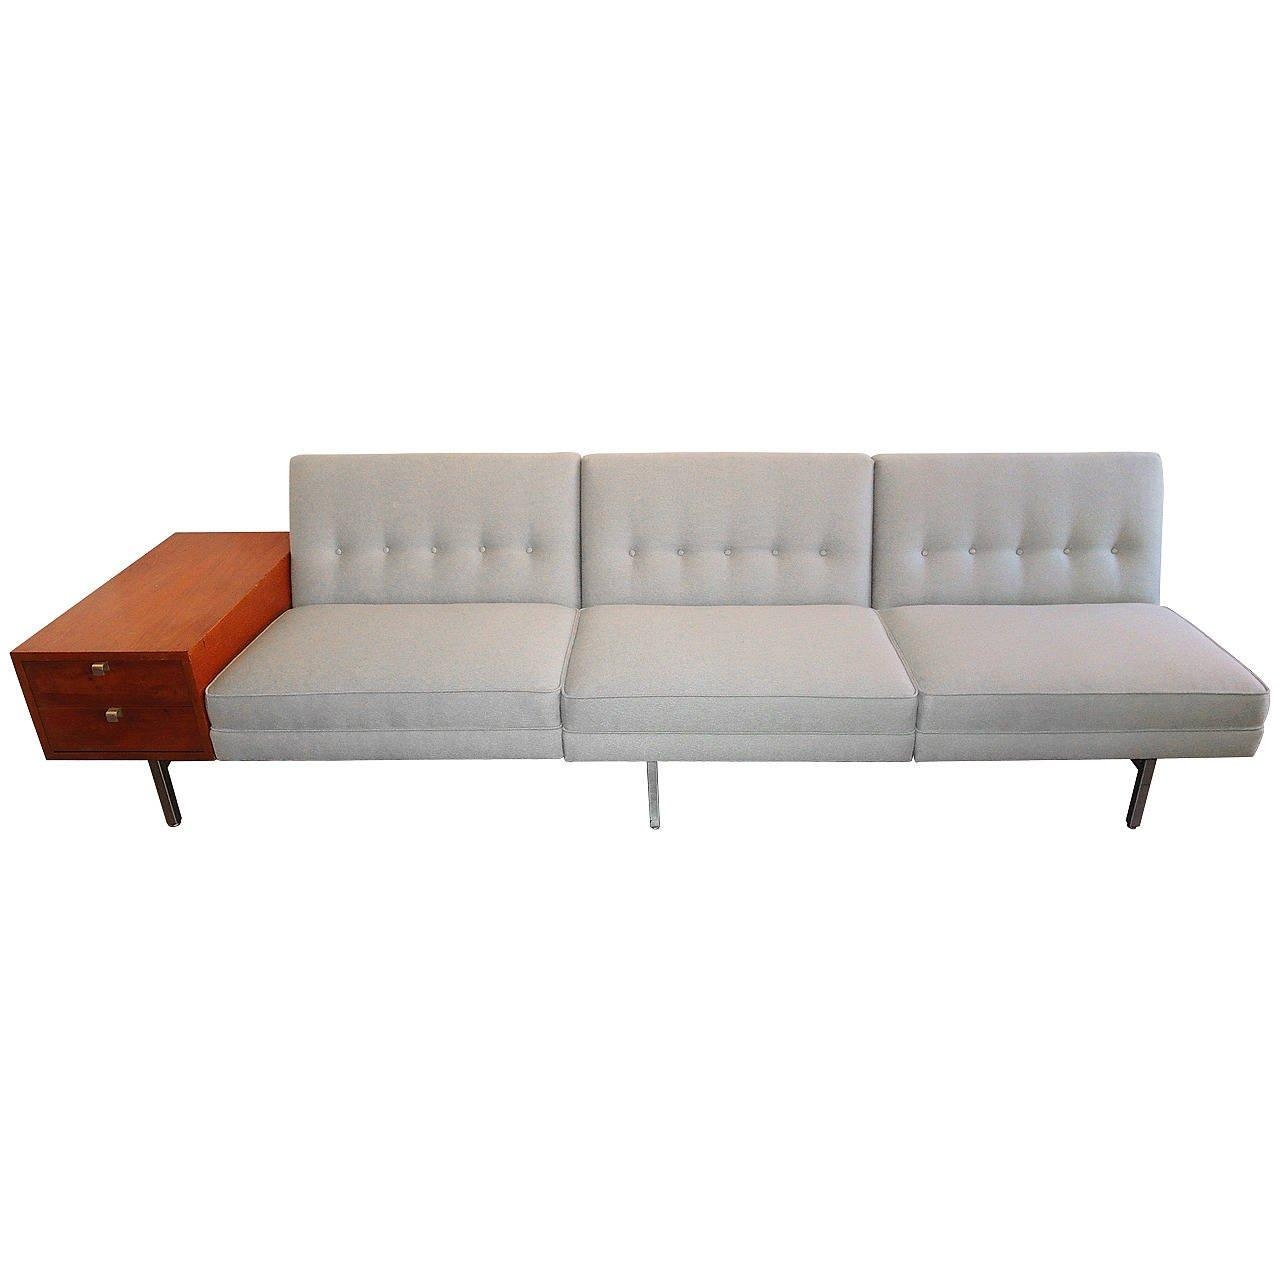 George Nelson Sofas – 32 For Sale At 1Stdibs Intended For George Nelson Sofas (Image 12 of 20)